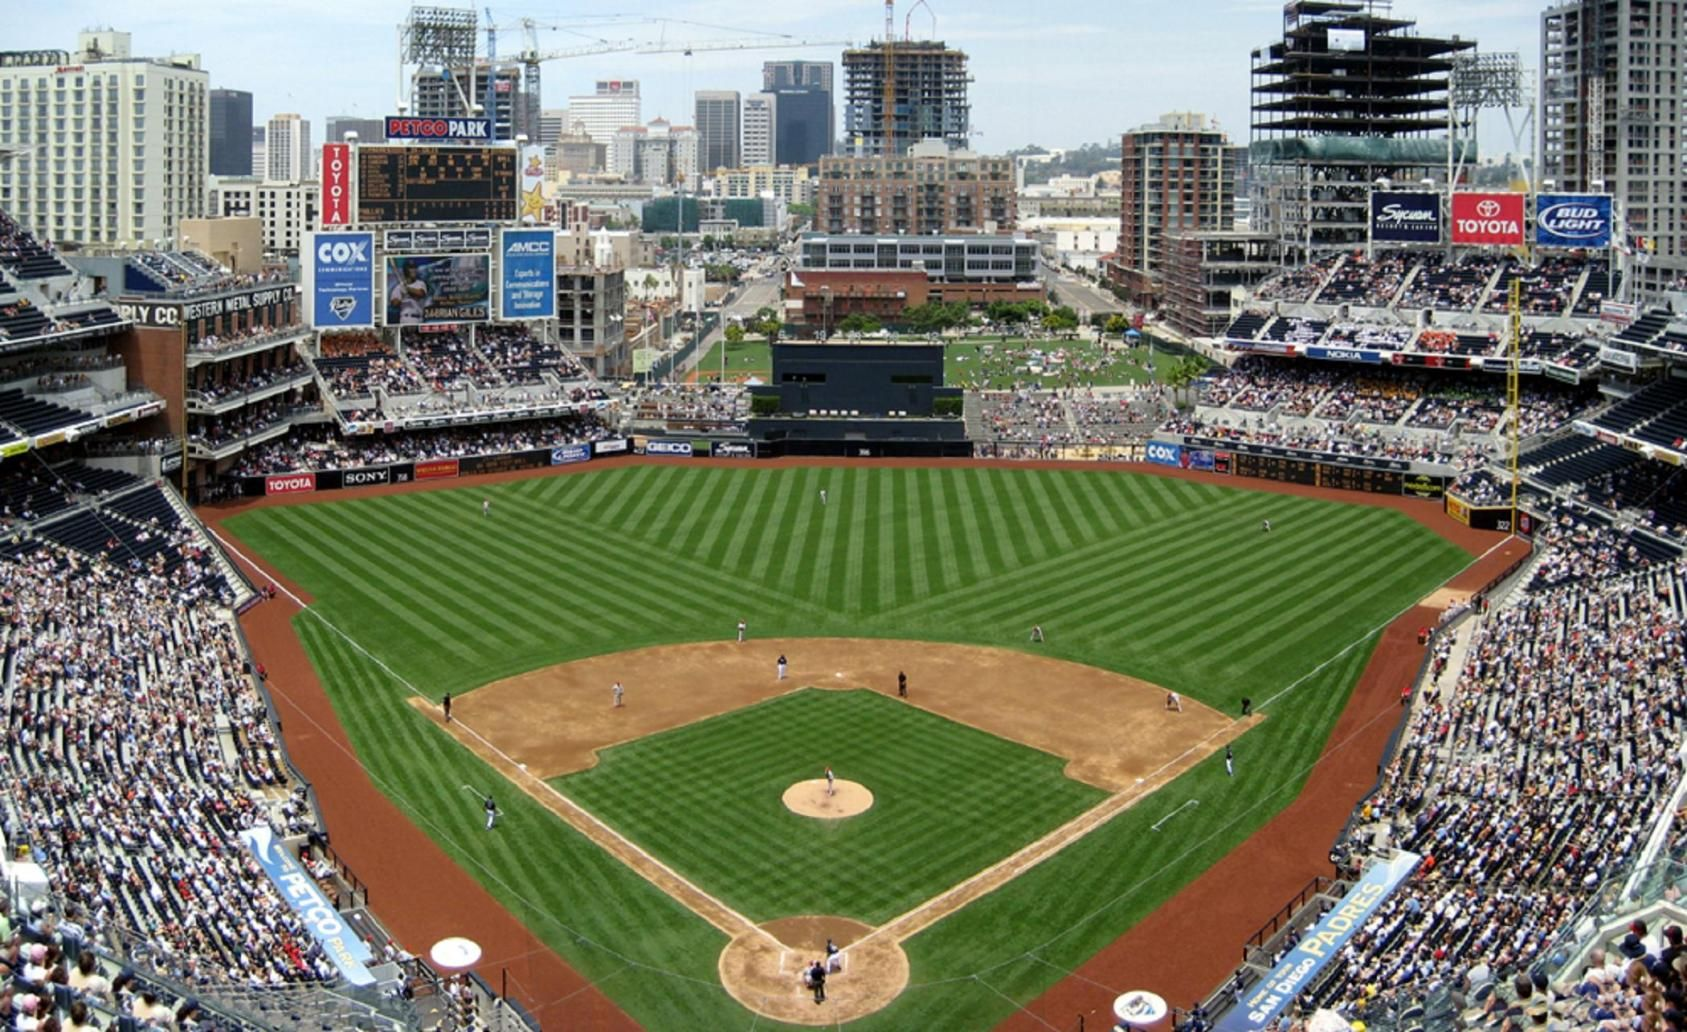 Petco Park In San Diego Home Plate View Petco Park San Diego Houses Mlb Stadiums